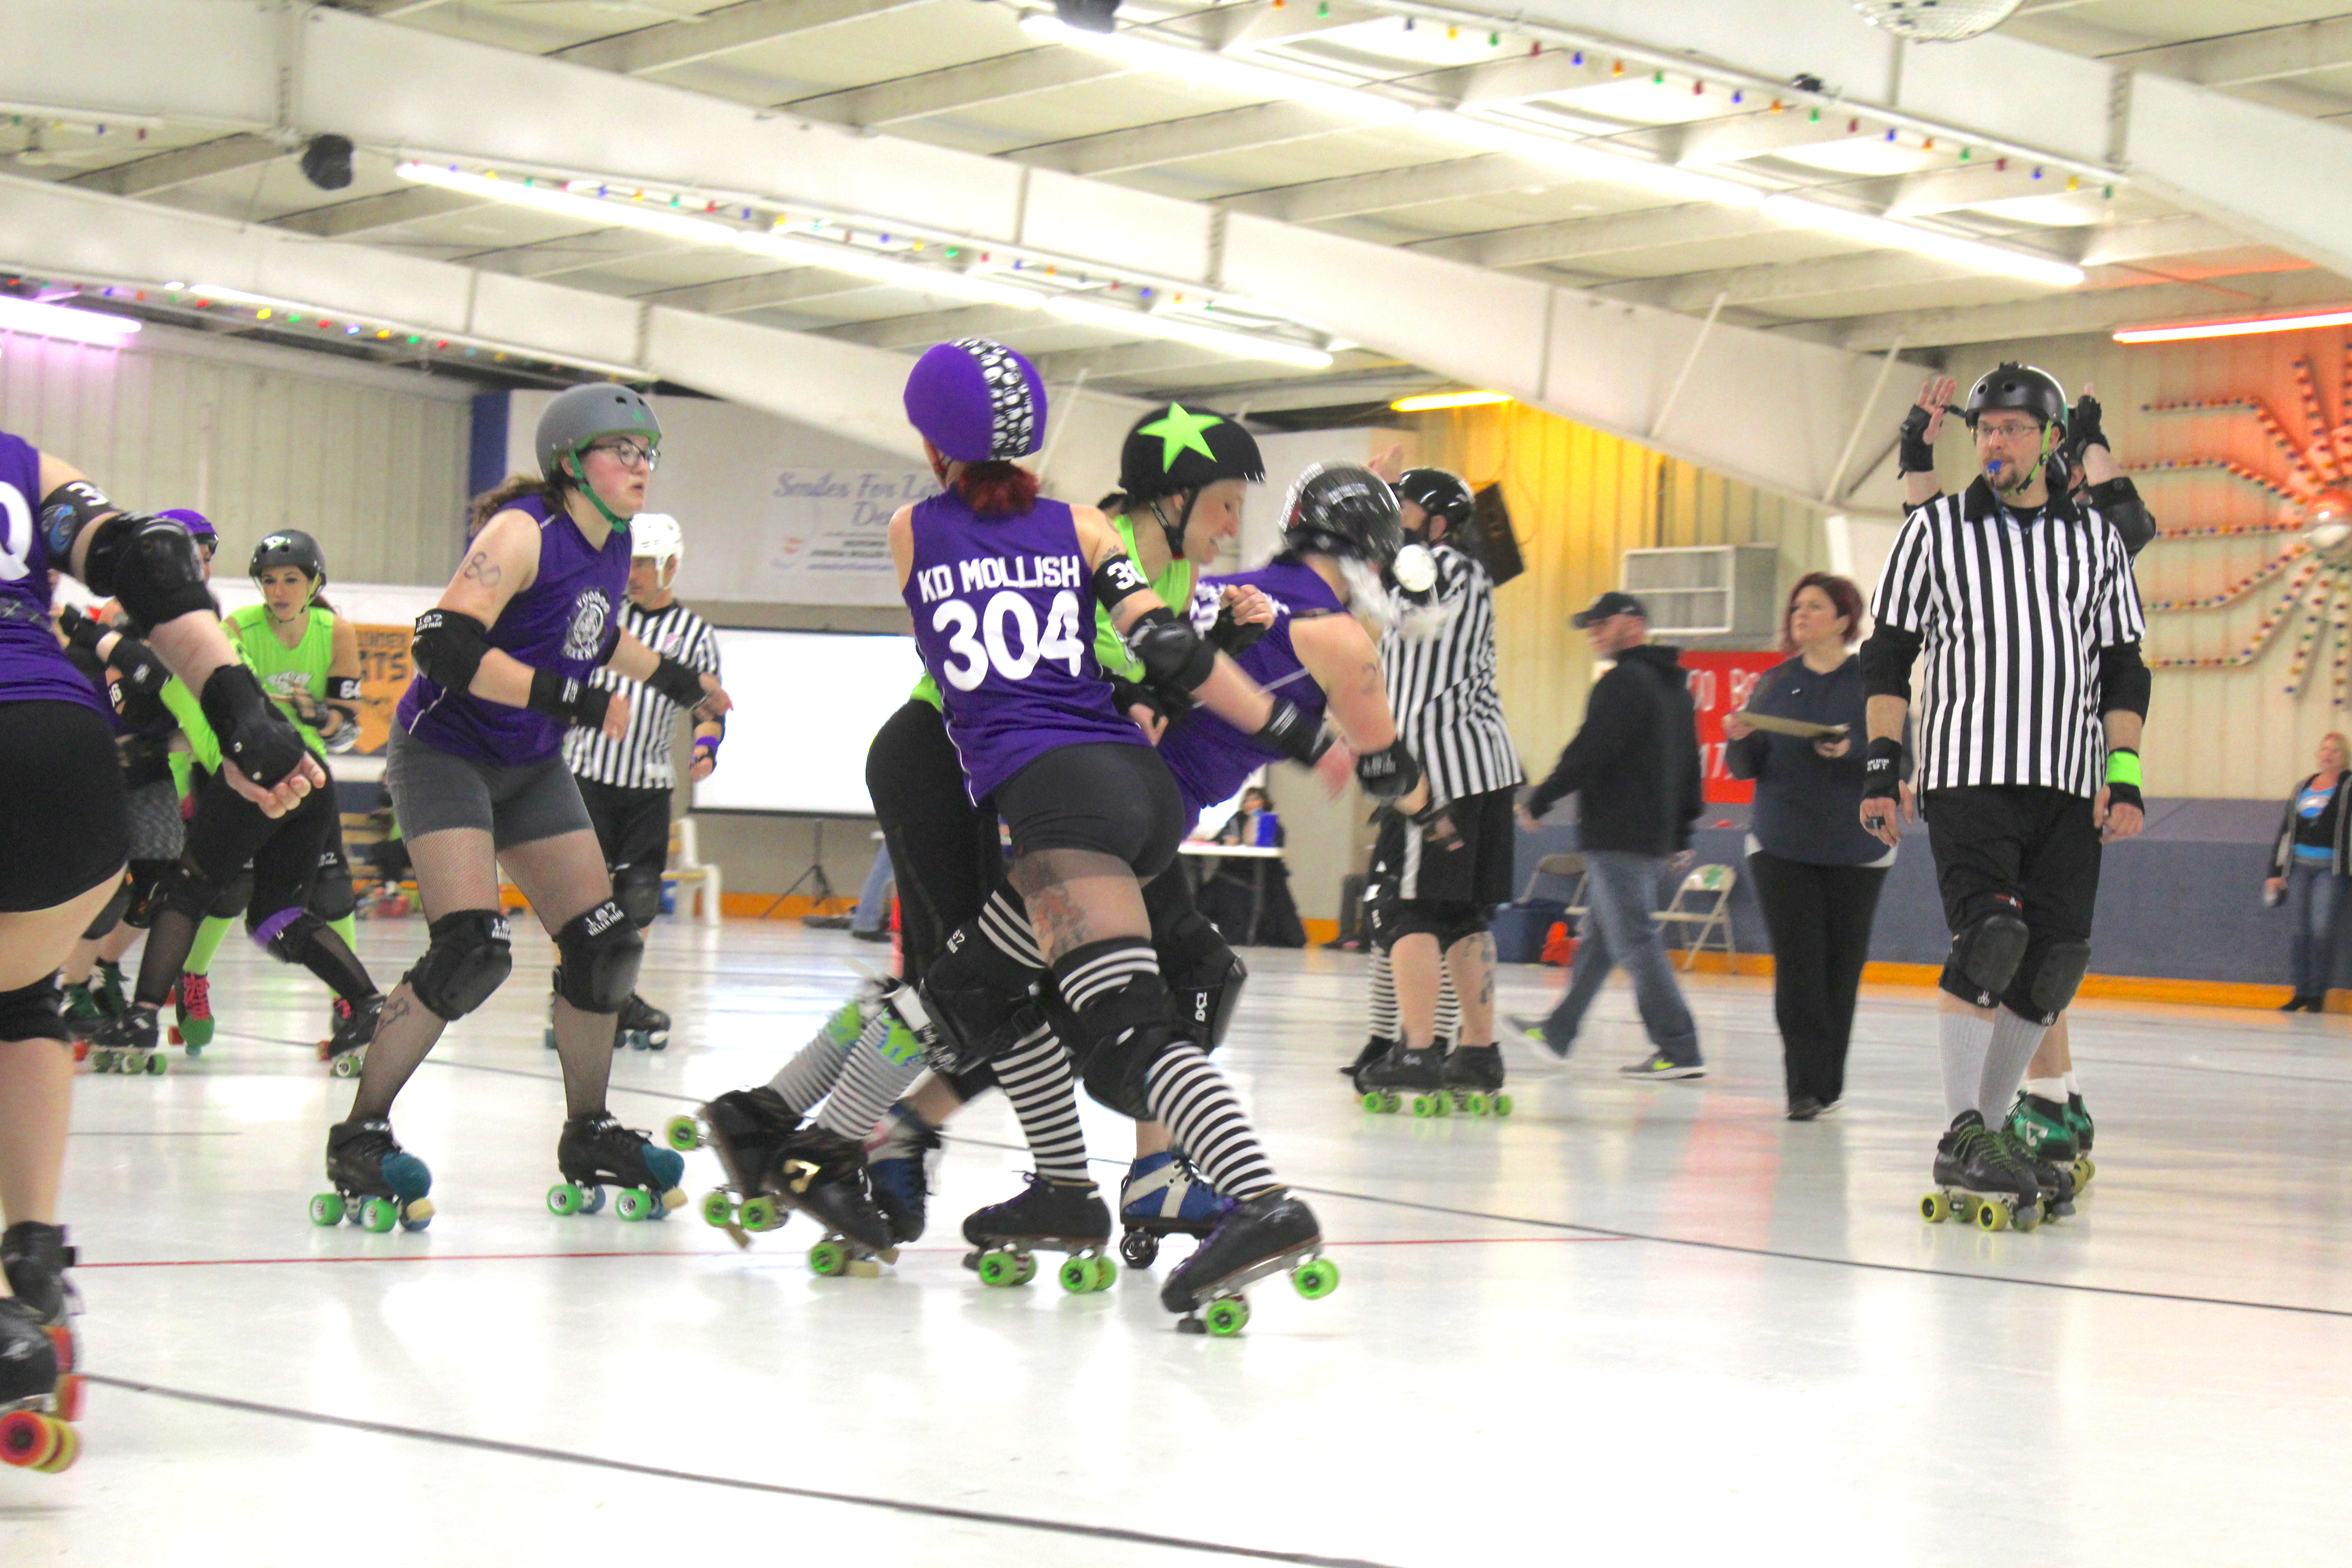 Women playing in a roller derby game.